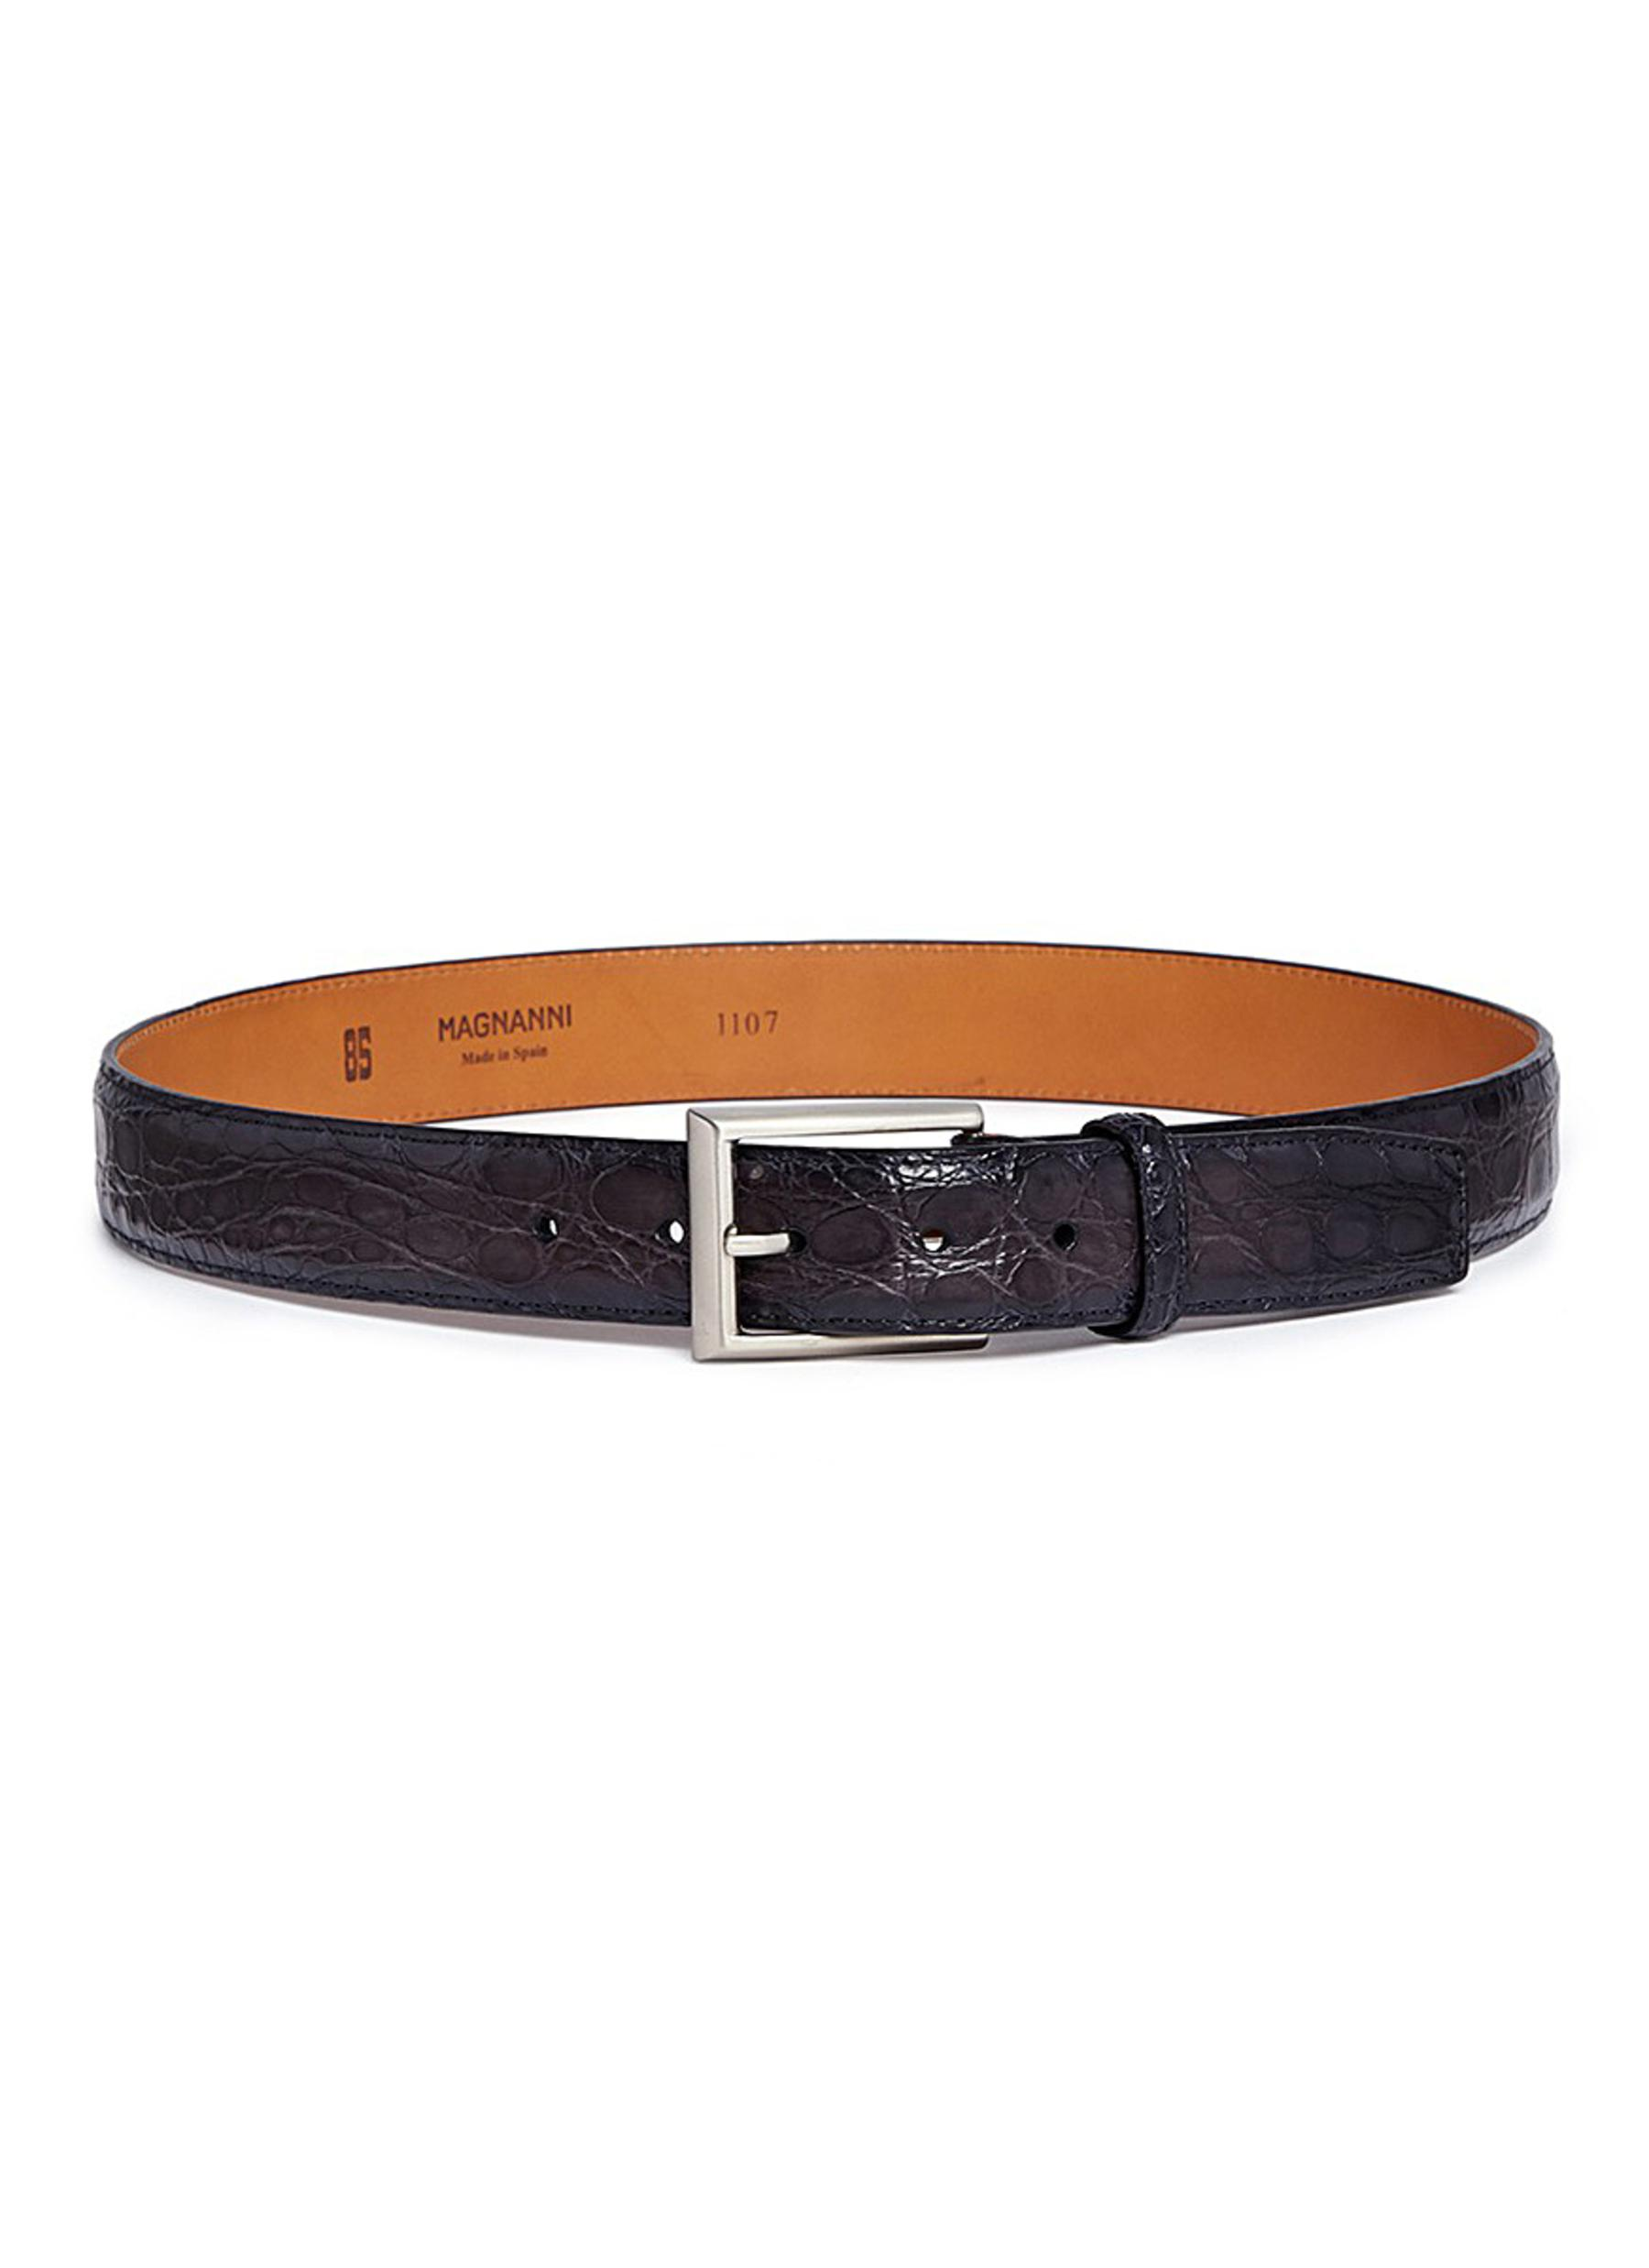 427c81809 Main View - Click To Enlarge - MAGNANNI - Crocodile leather belt